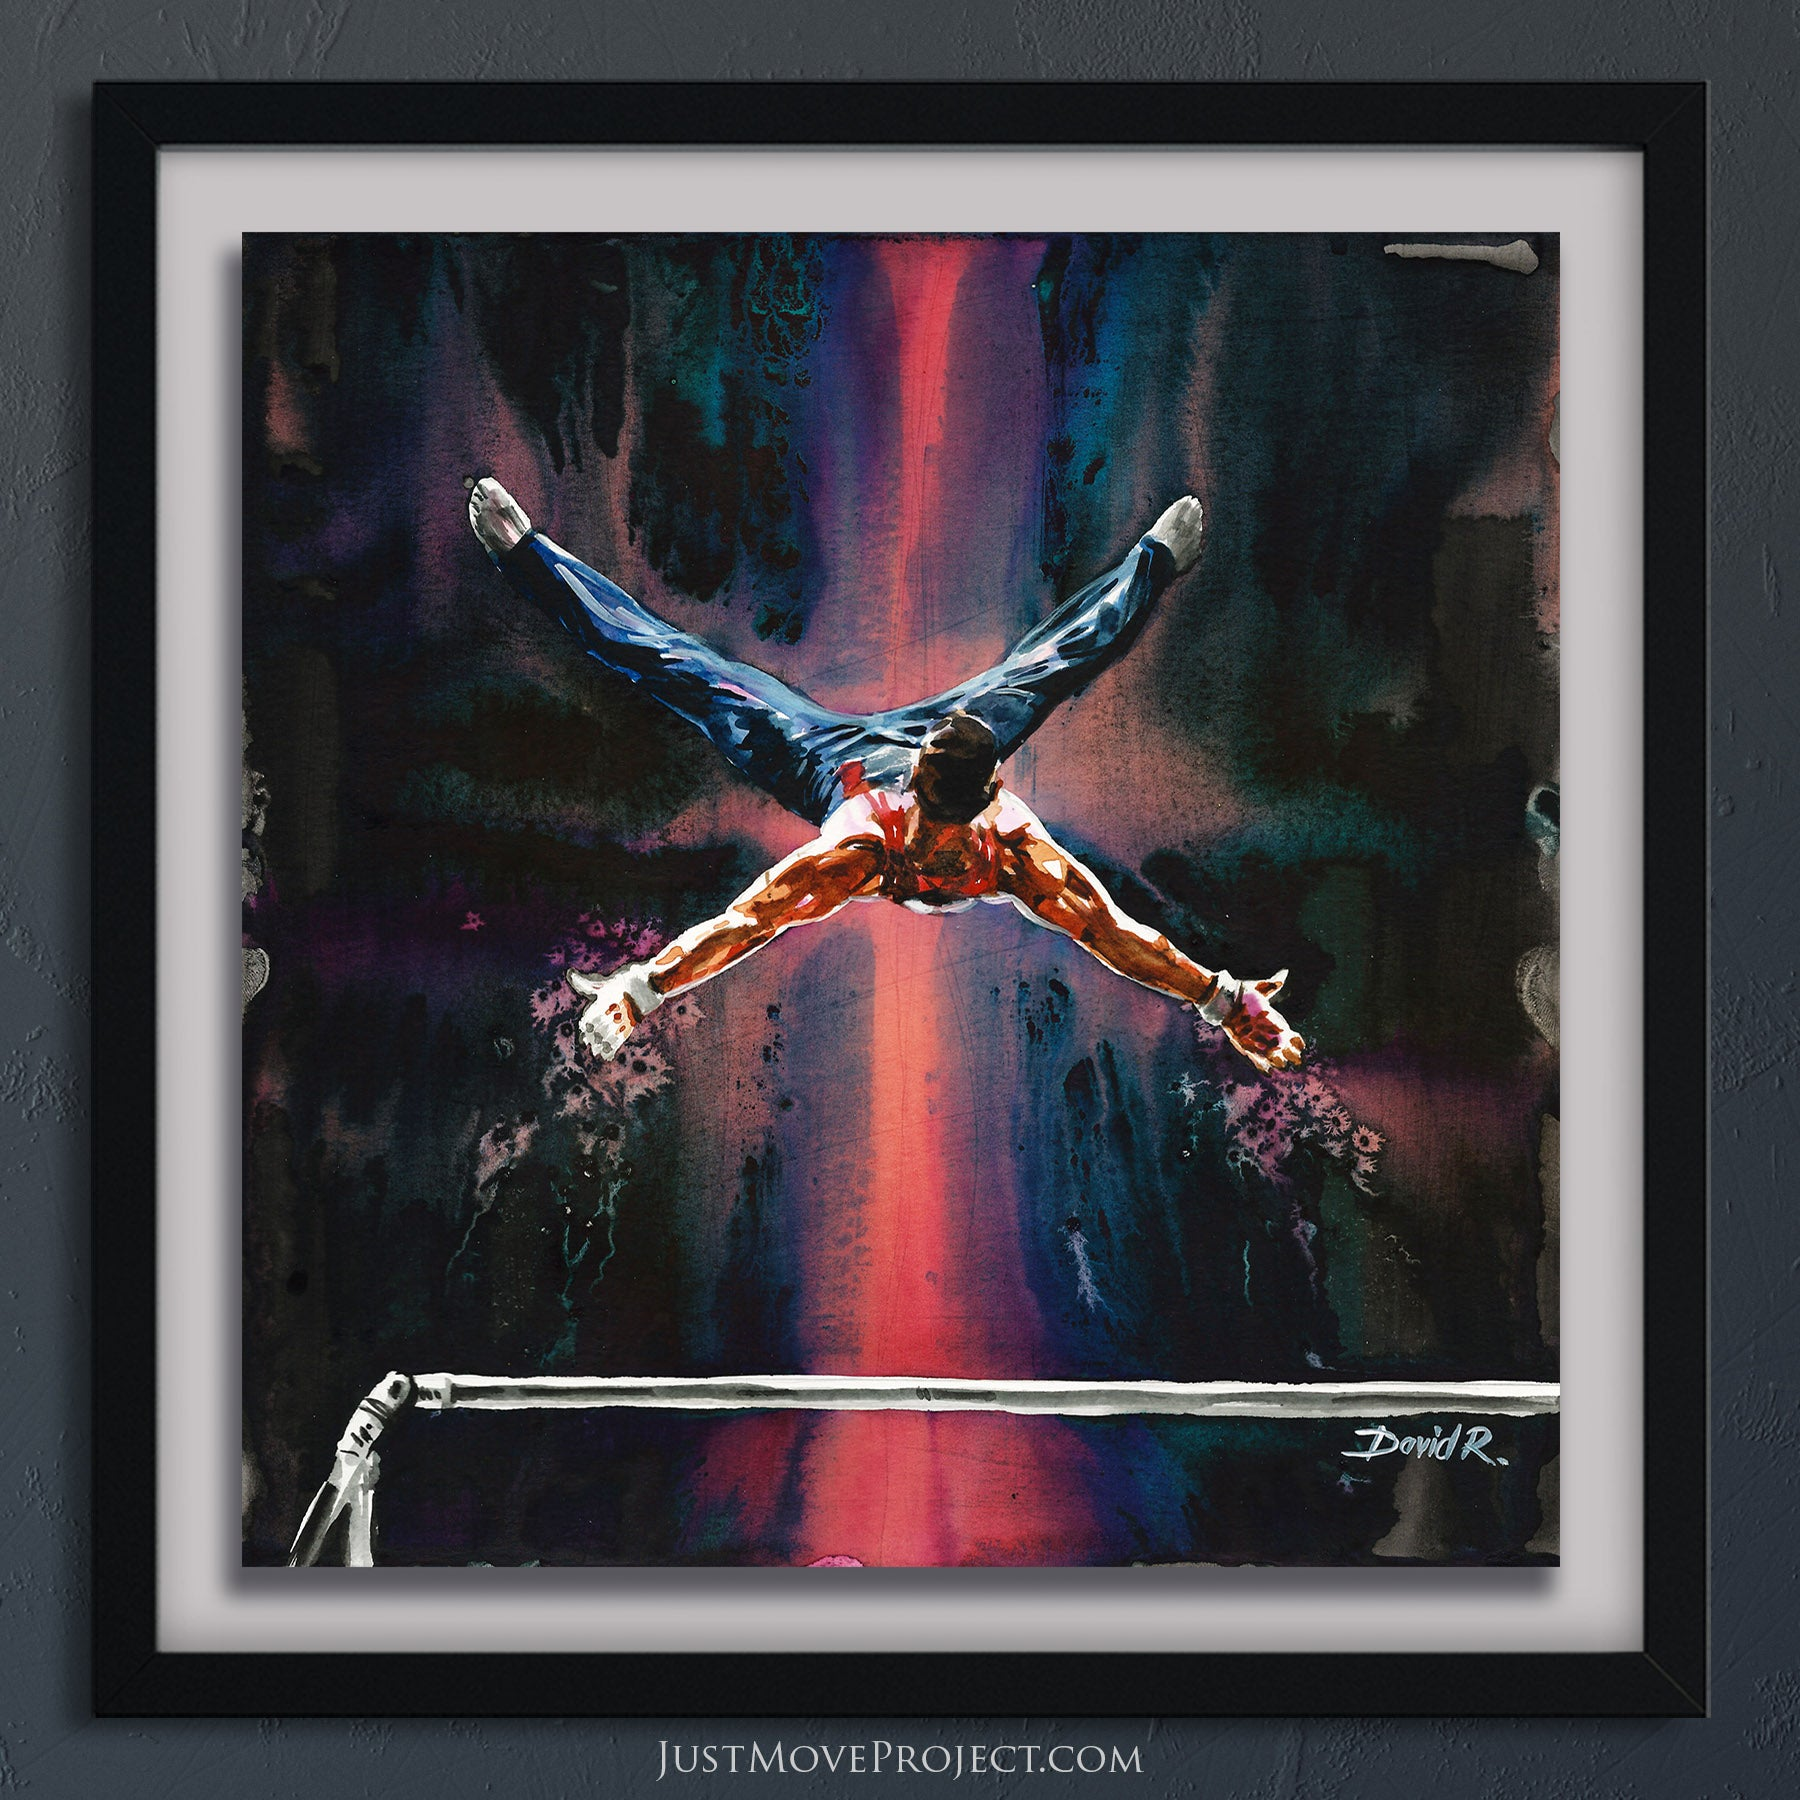 david roman art just move project 2 watercolour watercolor painting vibrant wall art home decor inspired by movement and athletes turquoise teal mauve olympic gymnast samuel mikulak gymnastics men